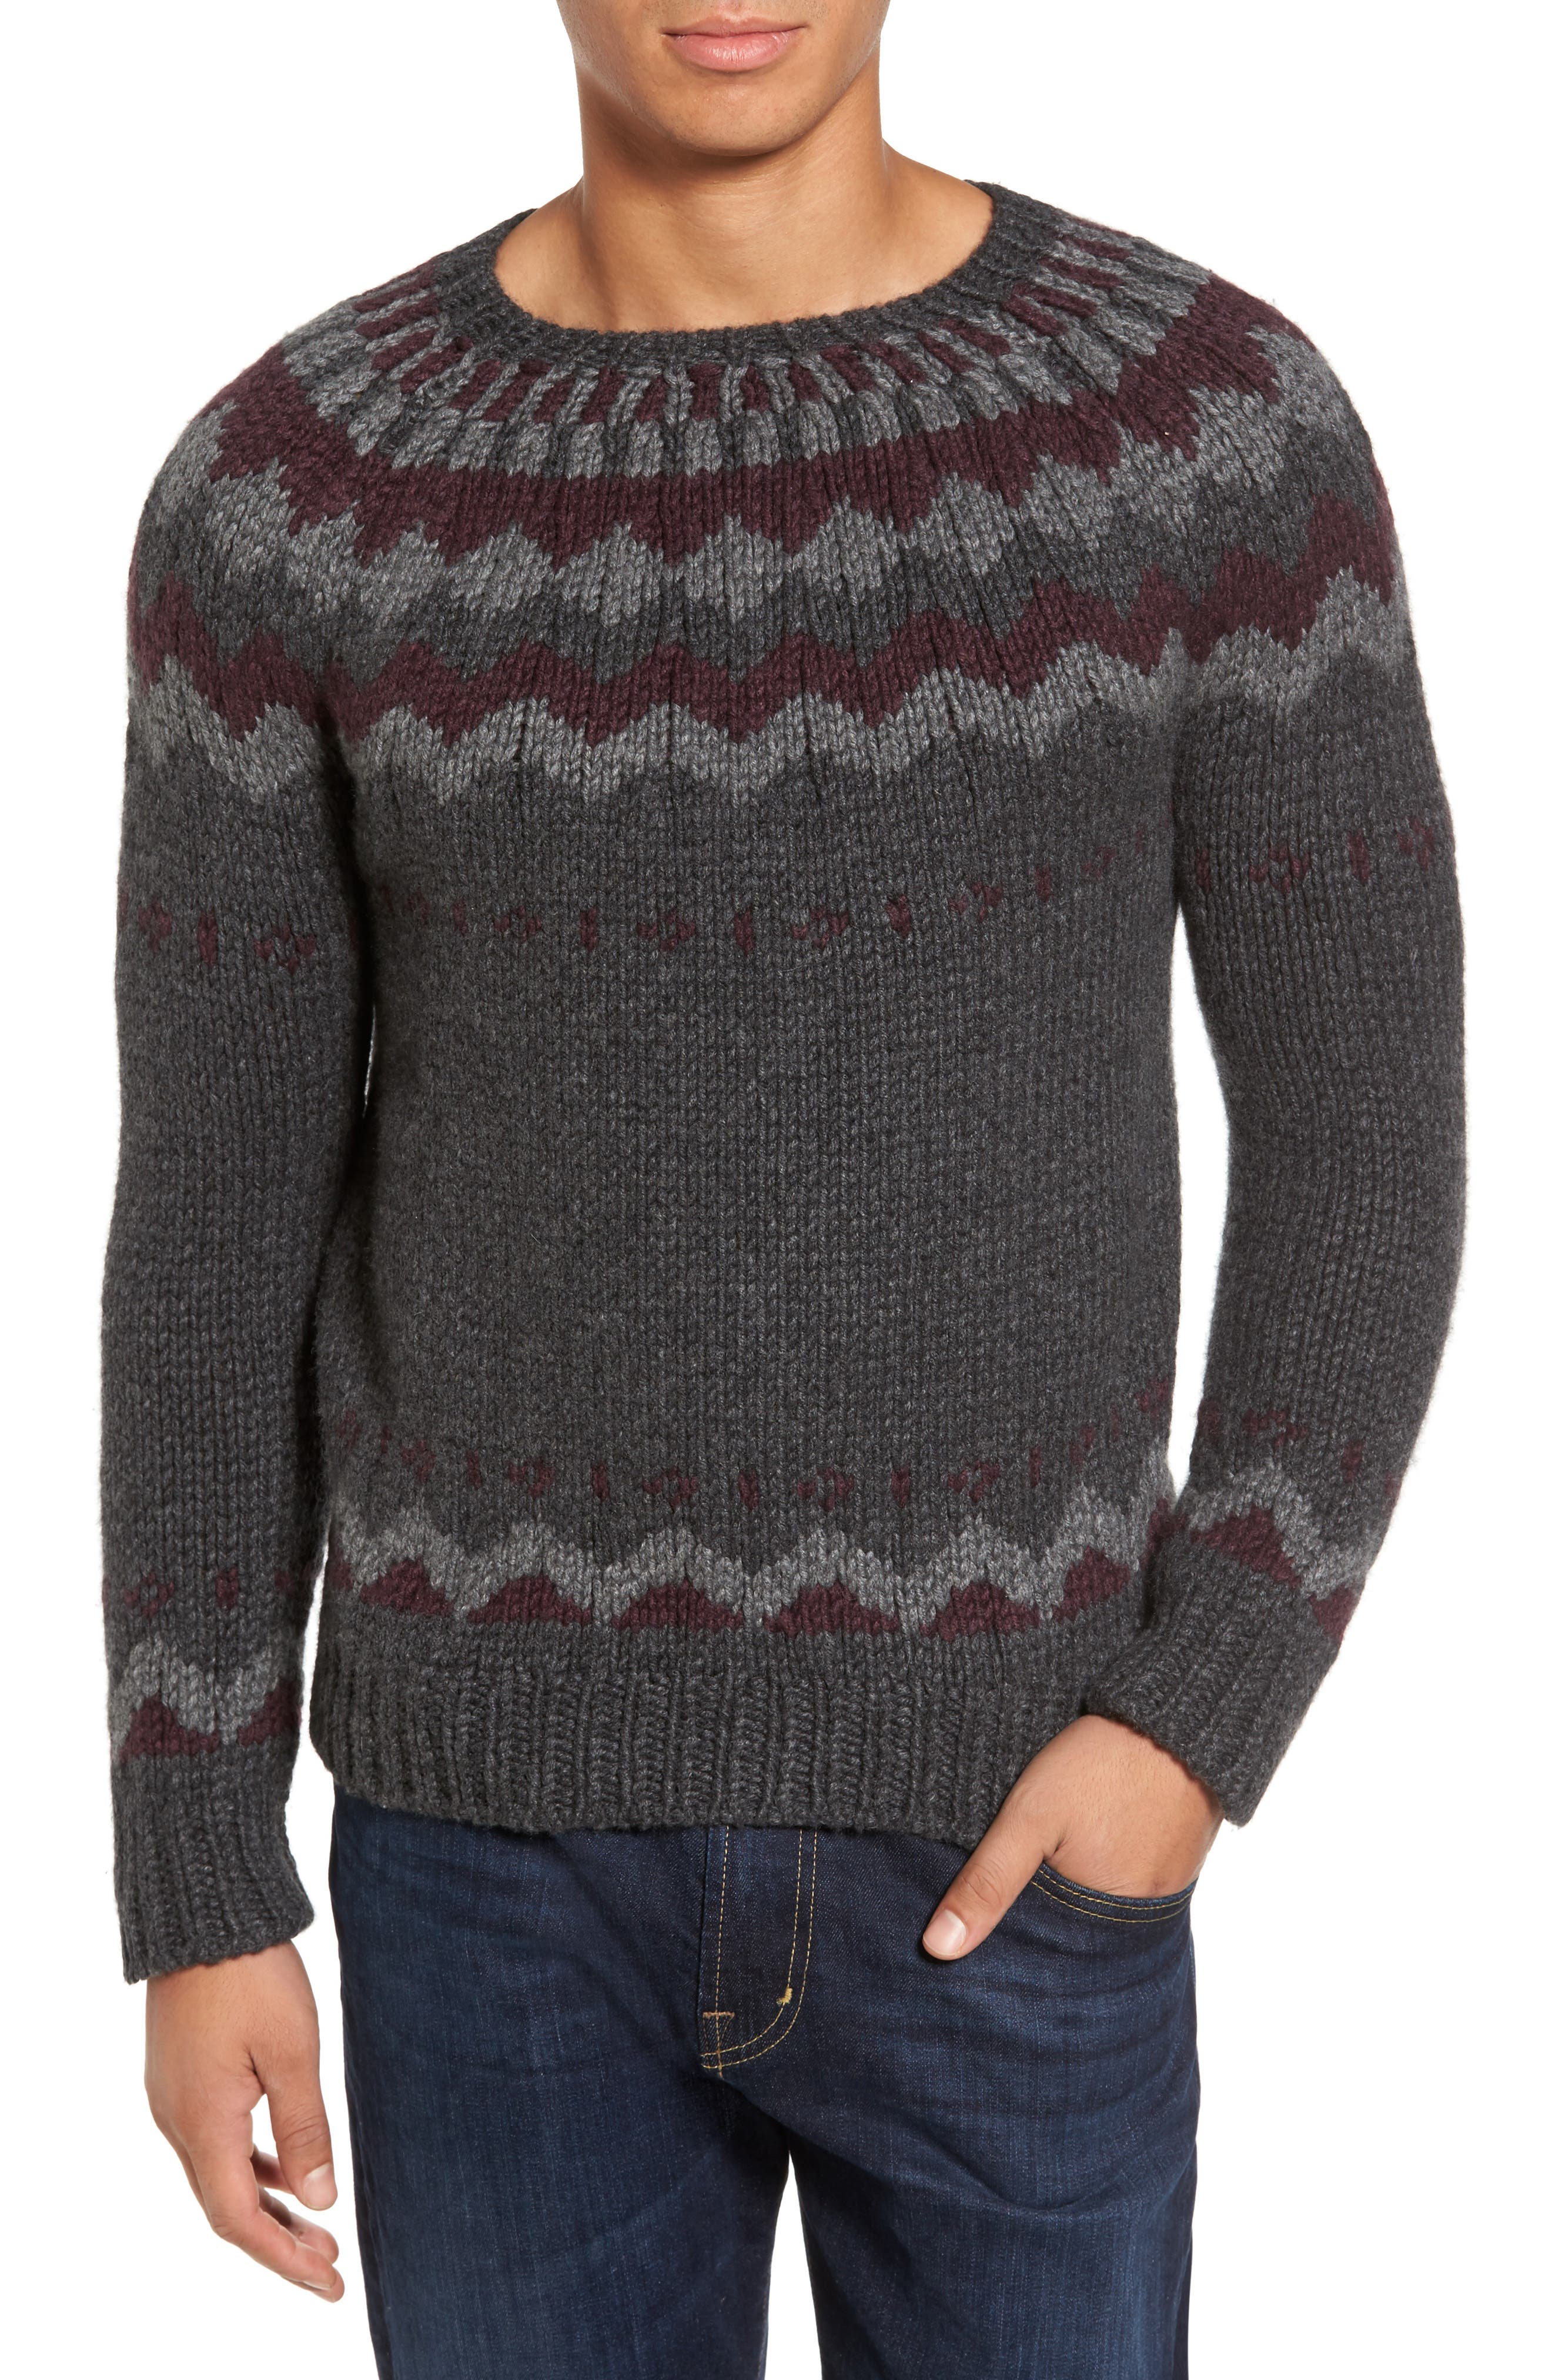 Intarsia Cashmere Sweater,                             Main thumbnail 1, color,